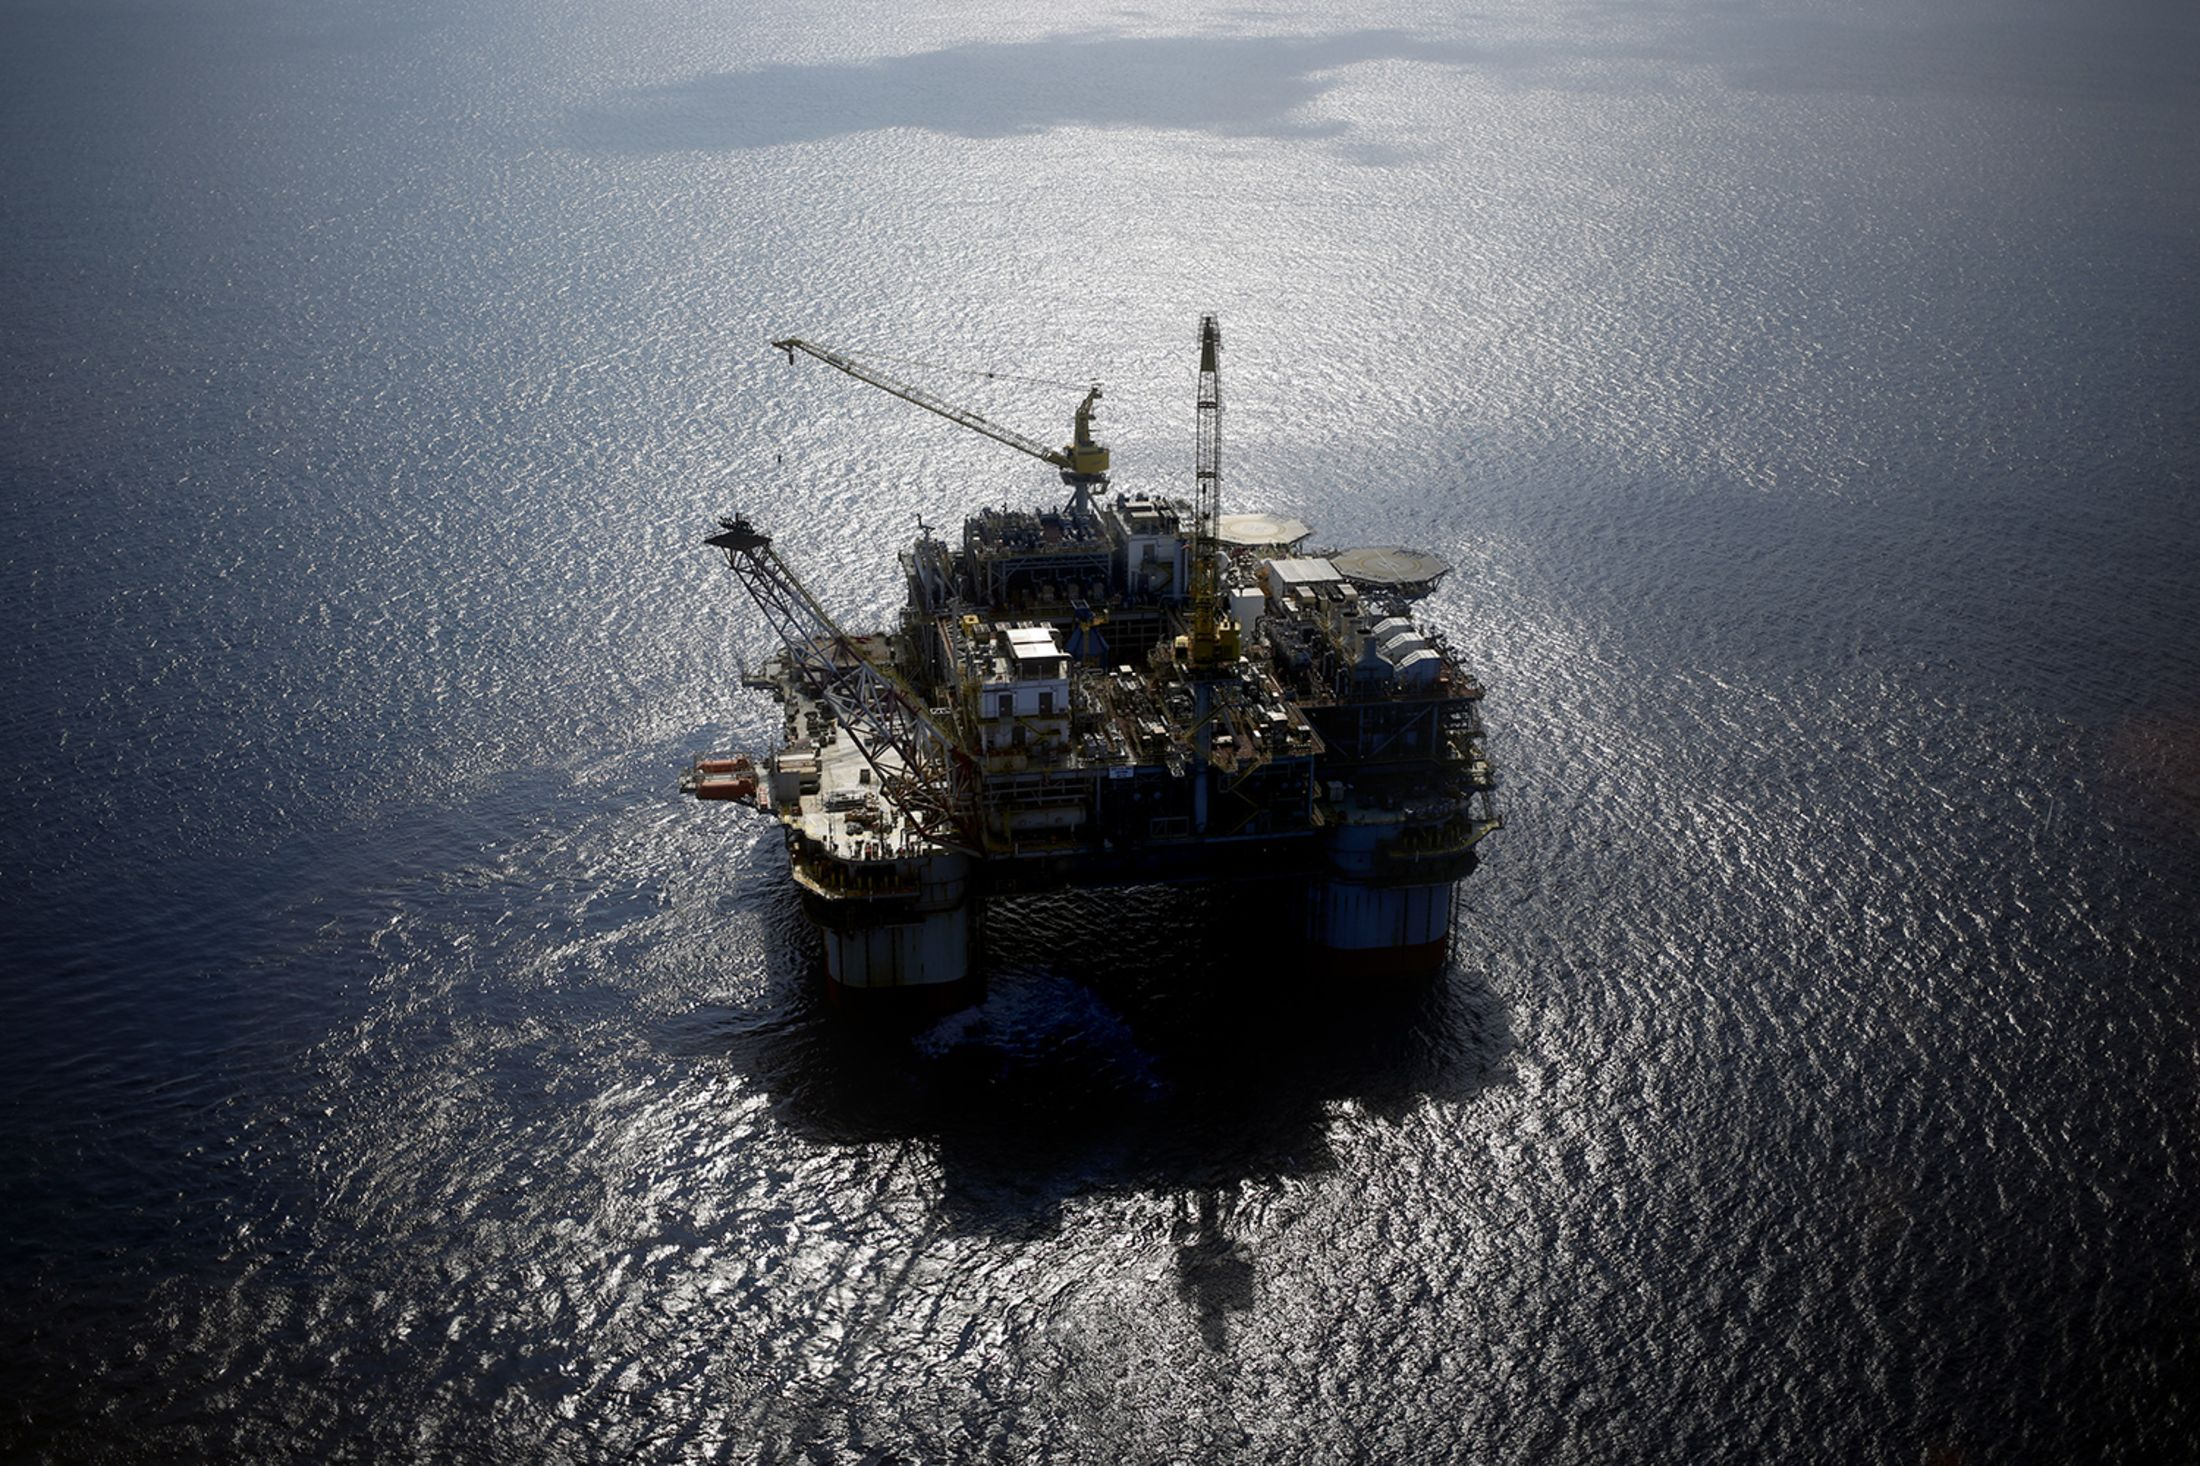 A deepwater oil platform in the Gulf of Mexico.